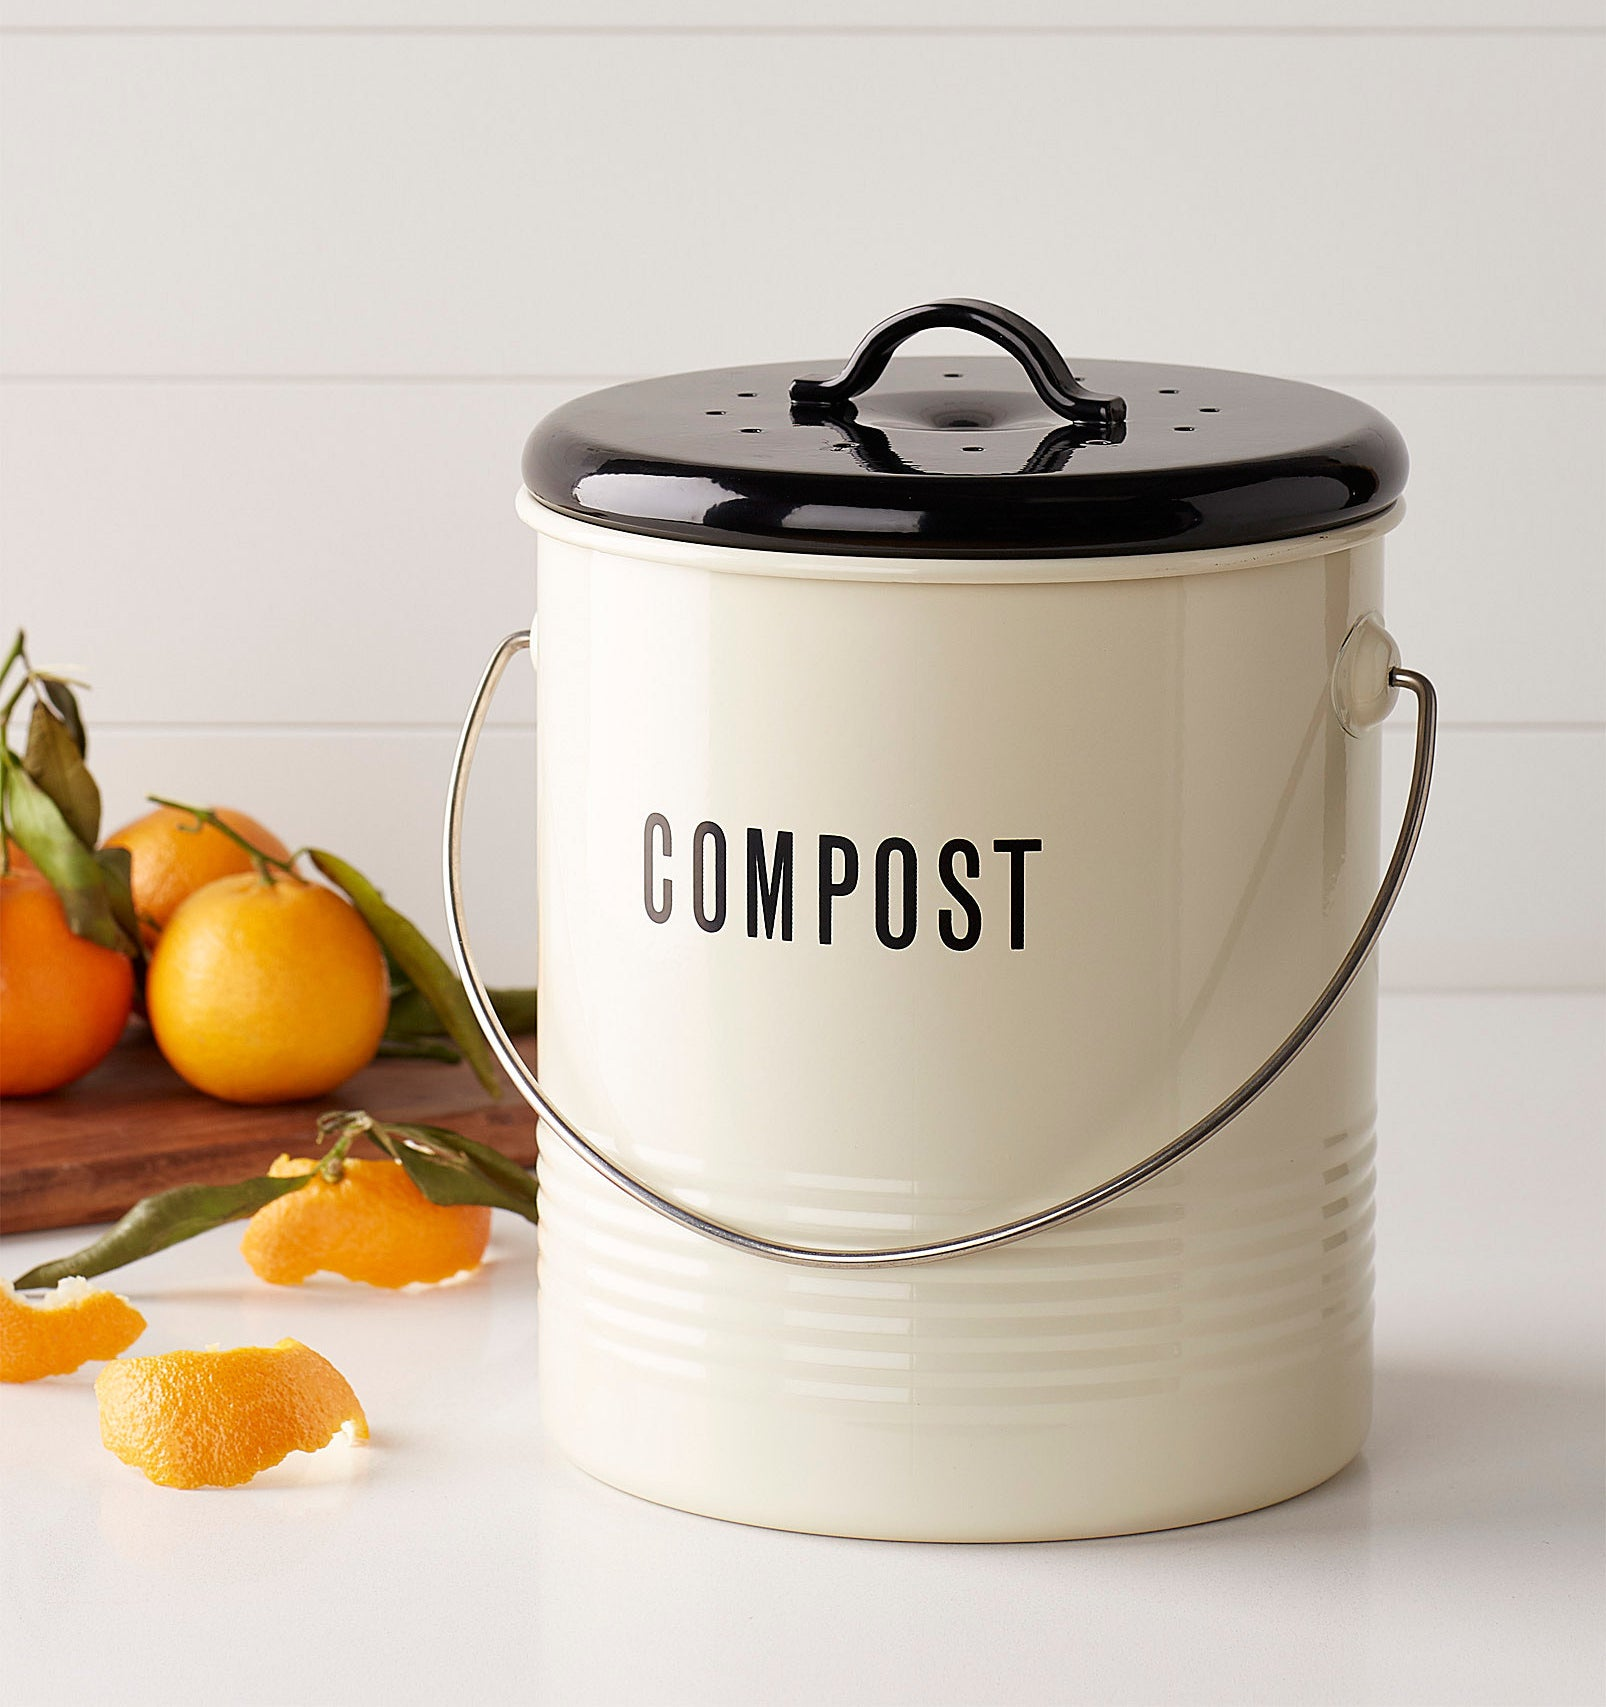 """A cute compost bin that says """"compost"""" on it"""